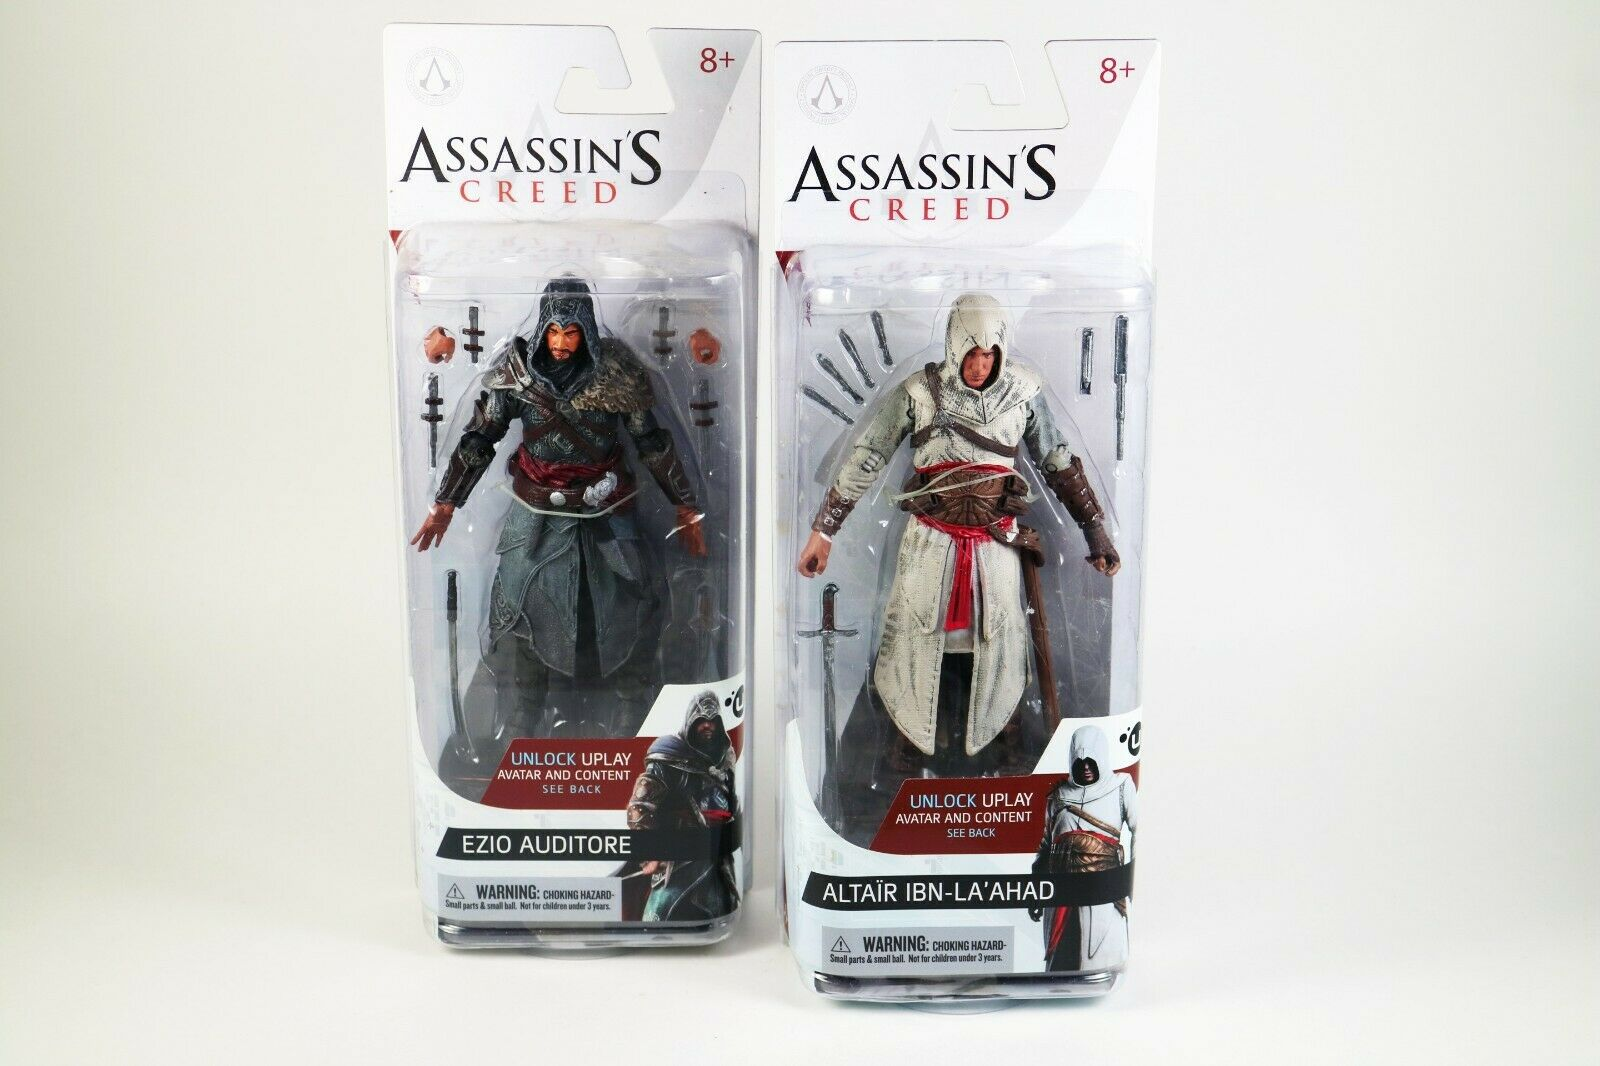 Assassin's Creed  Ezio Auditor -  Altair Ibn-La'Ahad Action Action Action Figure Lot 621985